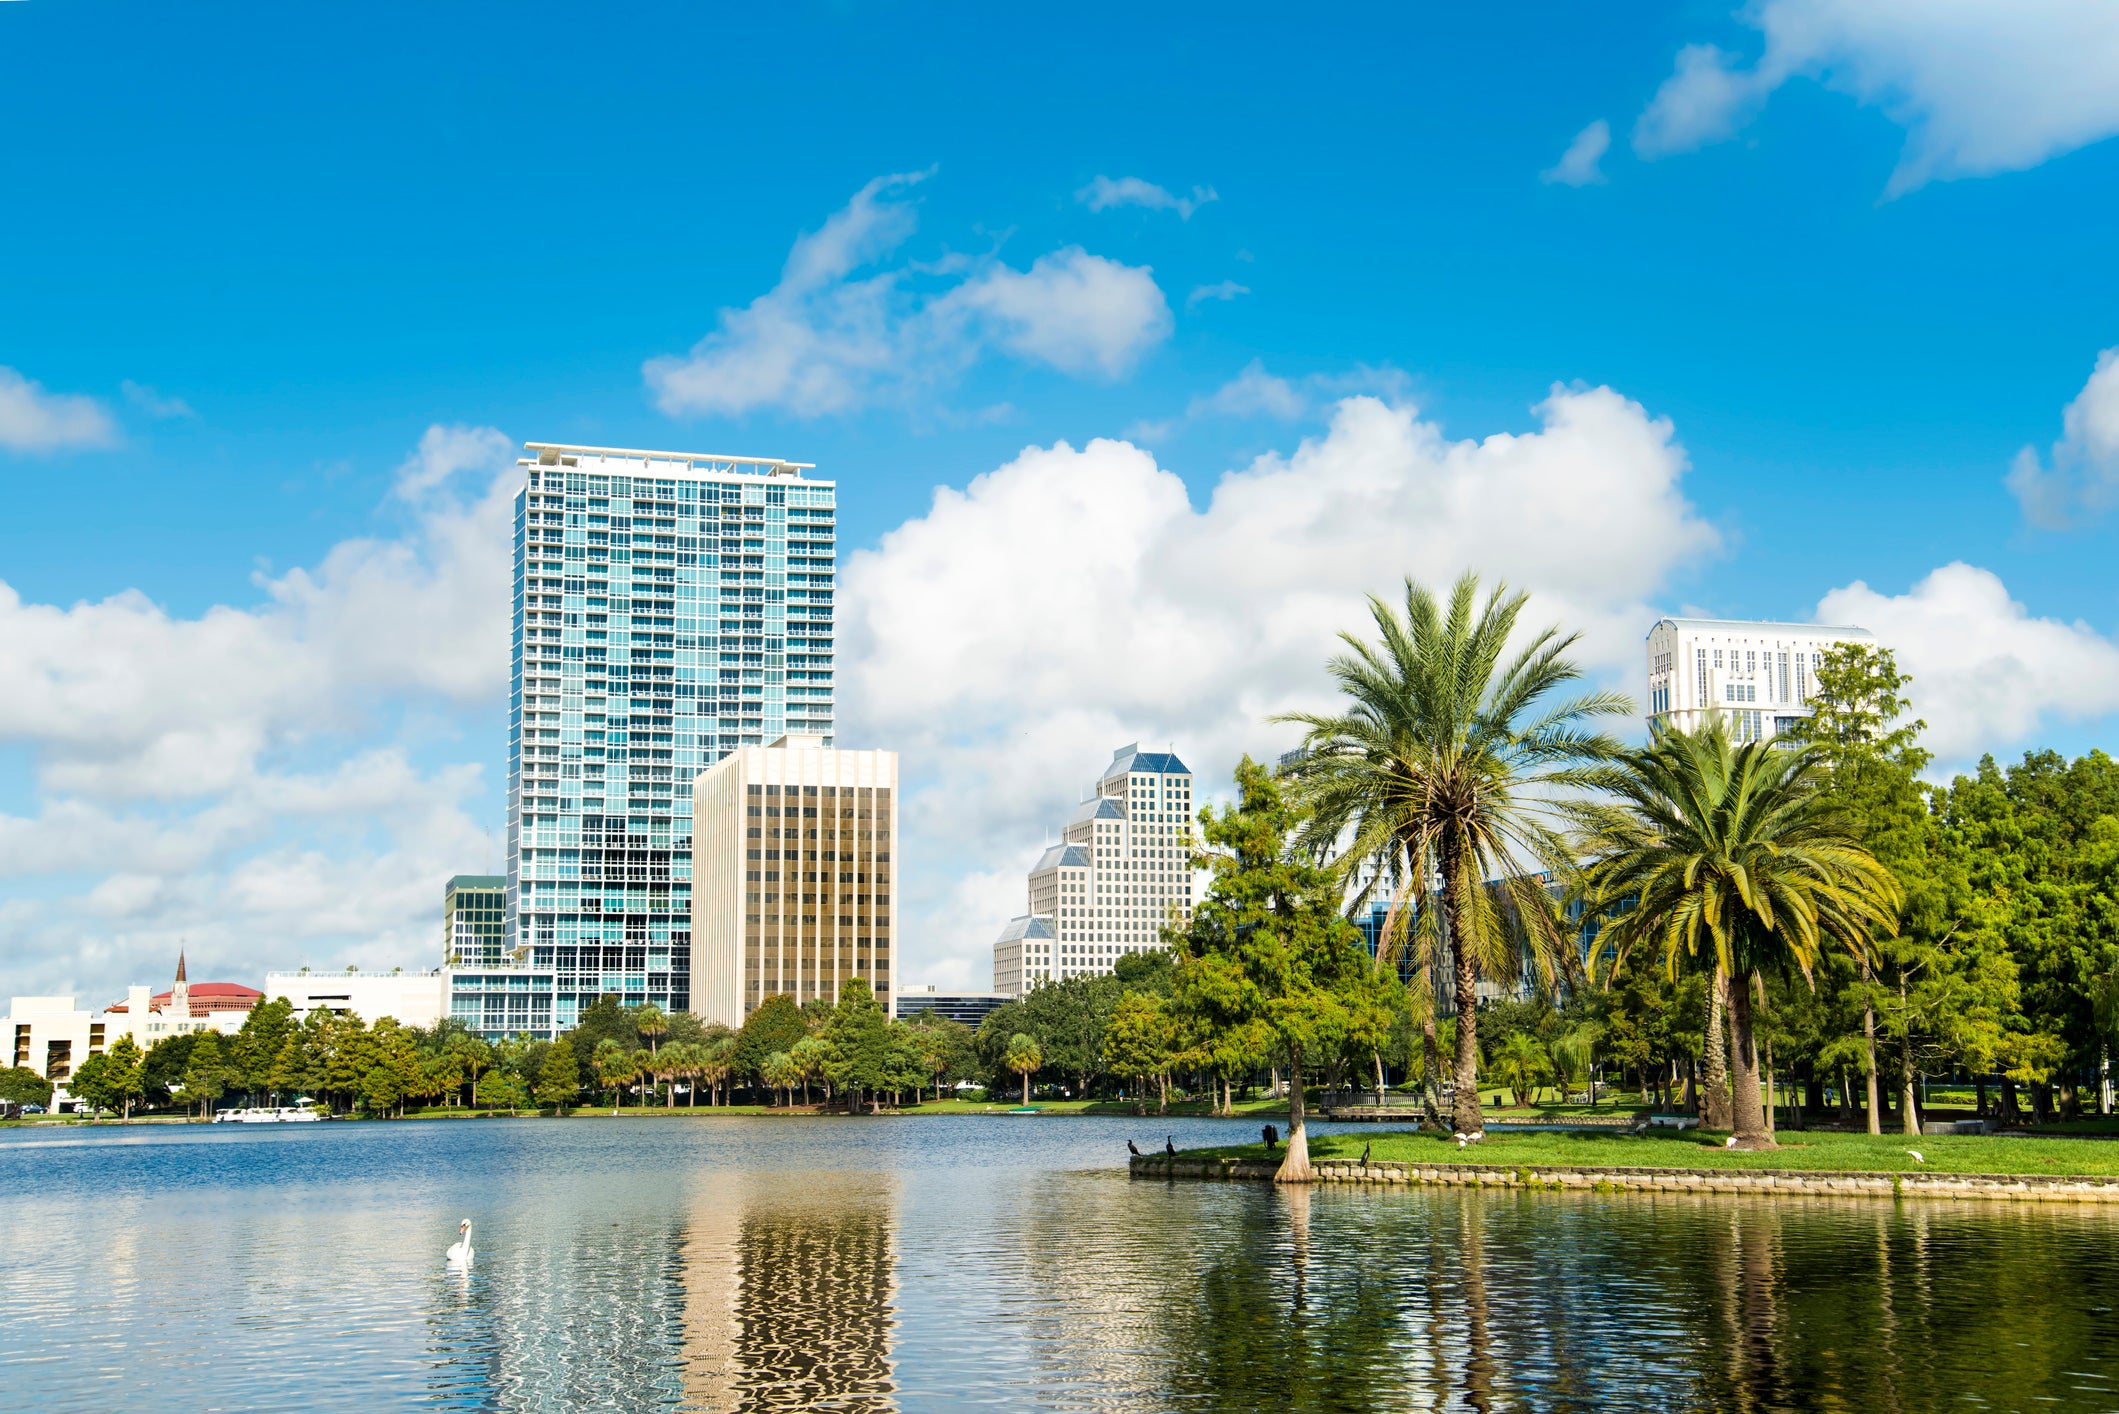 Florida ICU Beds Near Capacity With COVID-19 Patients